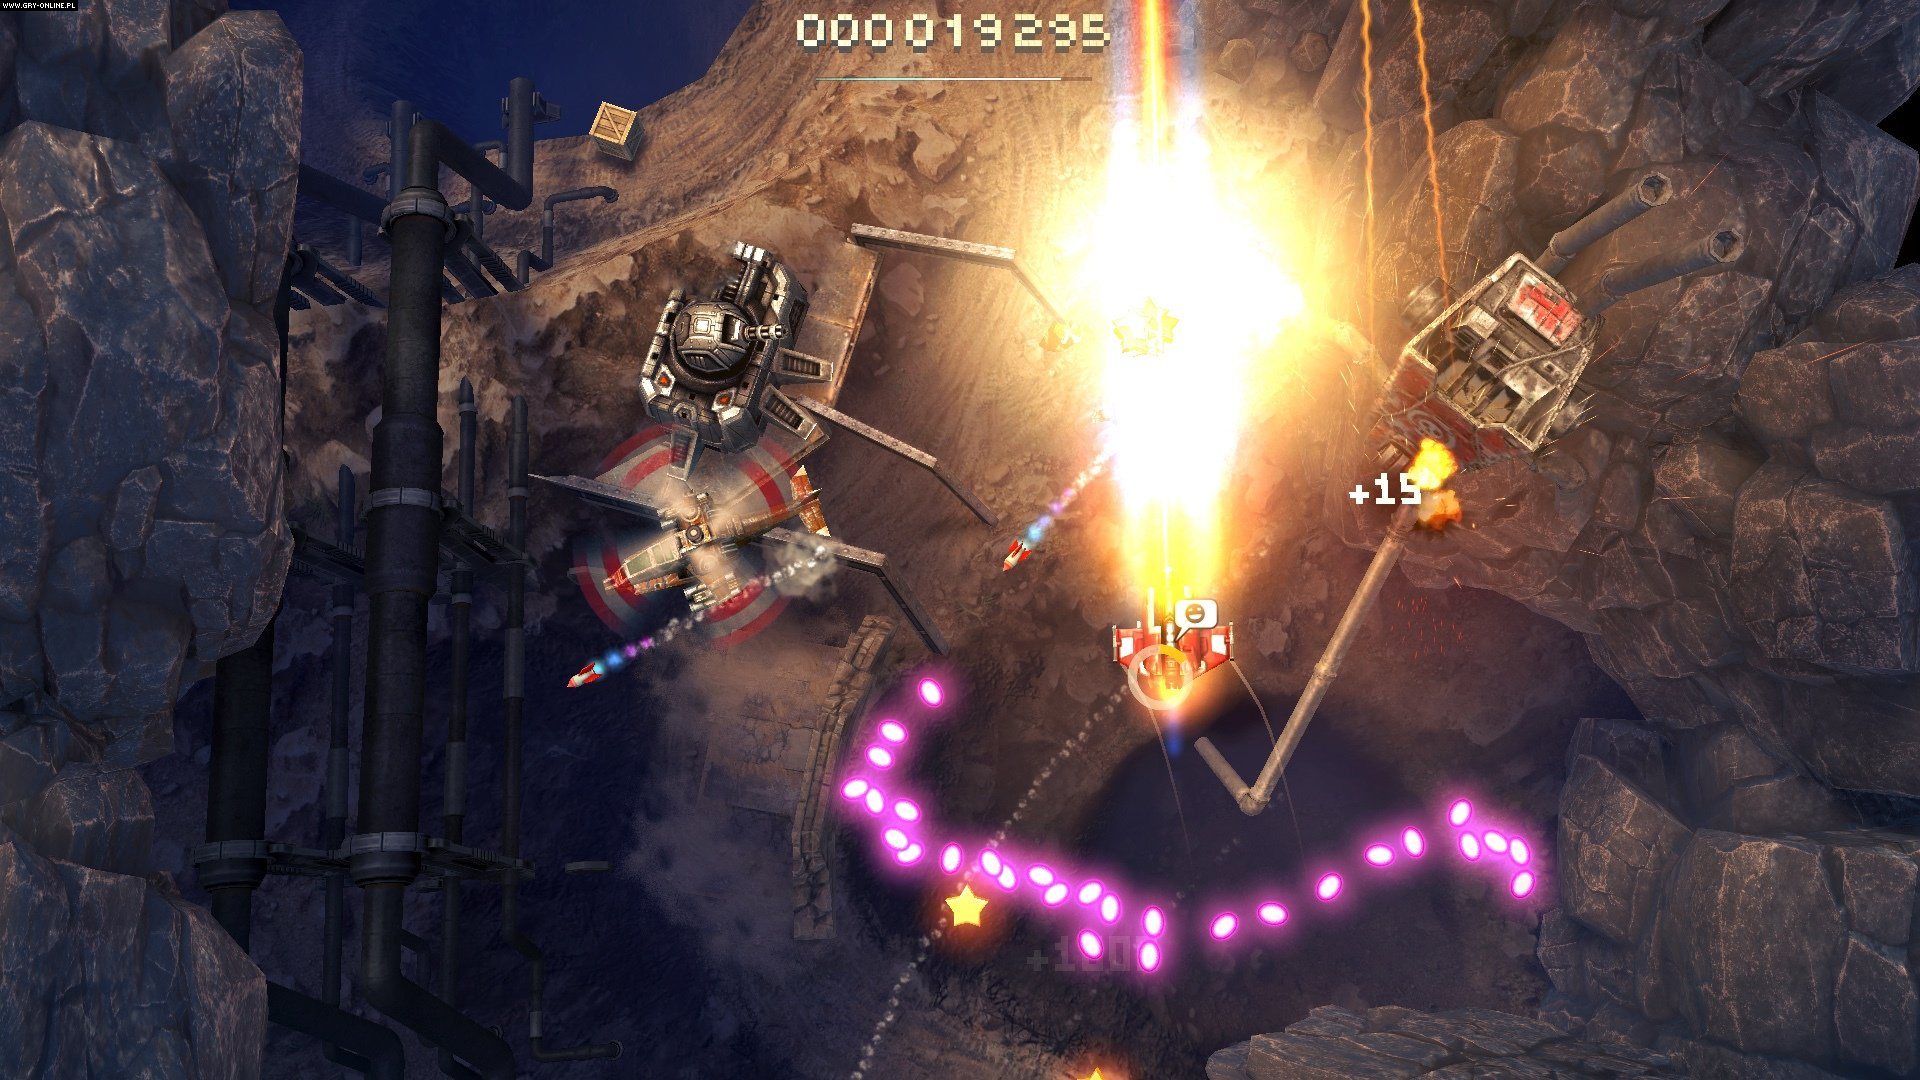 Sky Force Reloaded PC, PS4, XONE, AND, iOS, Switch Gry Screen 1/5, Infinite Dreams